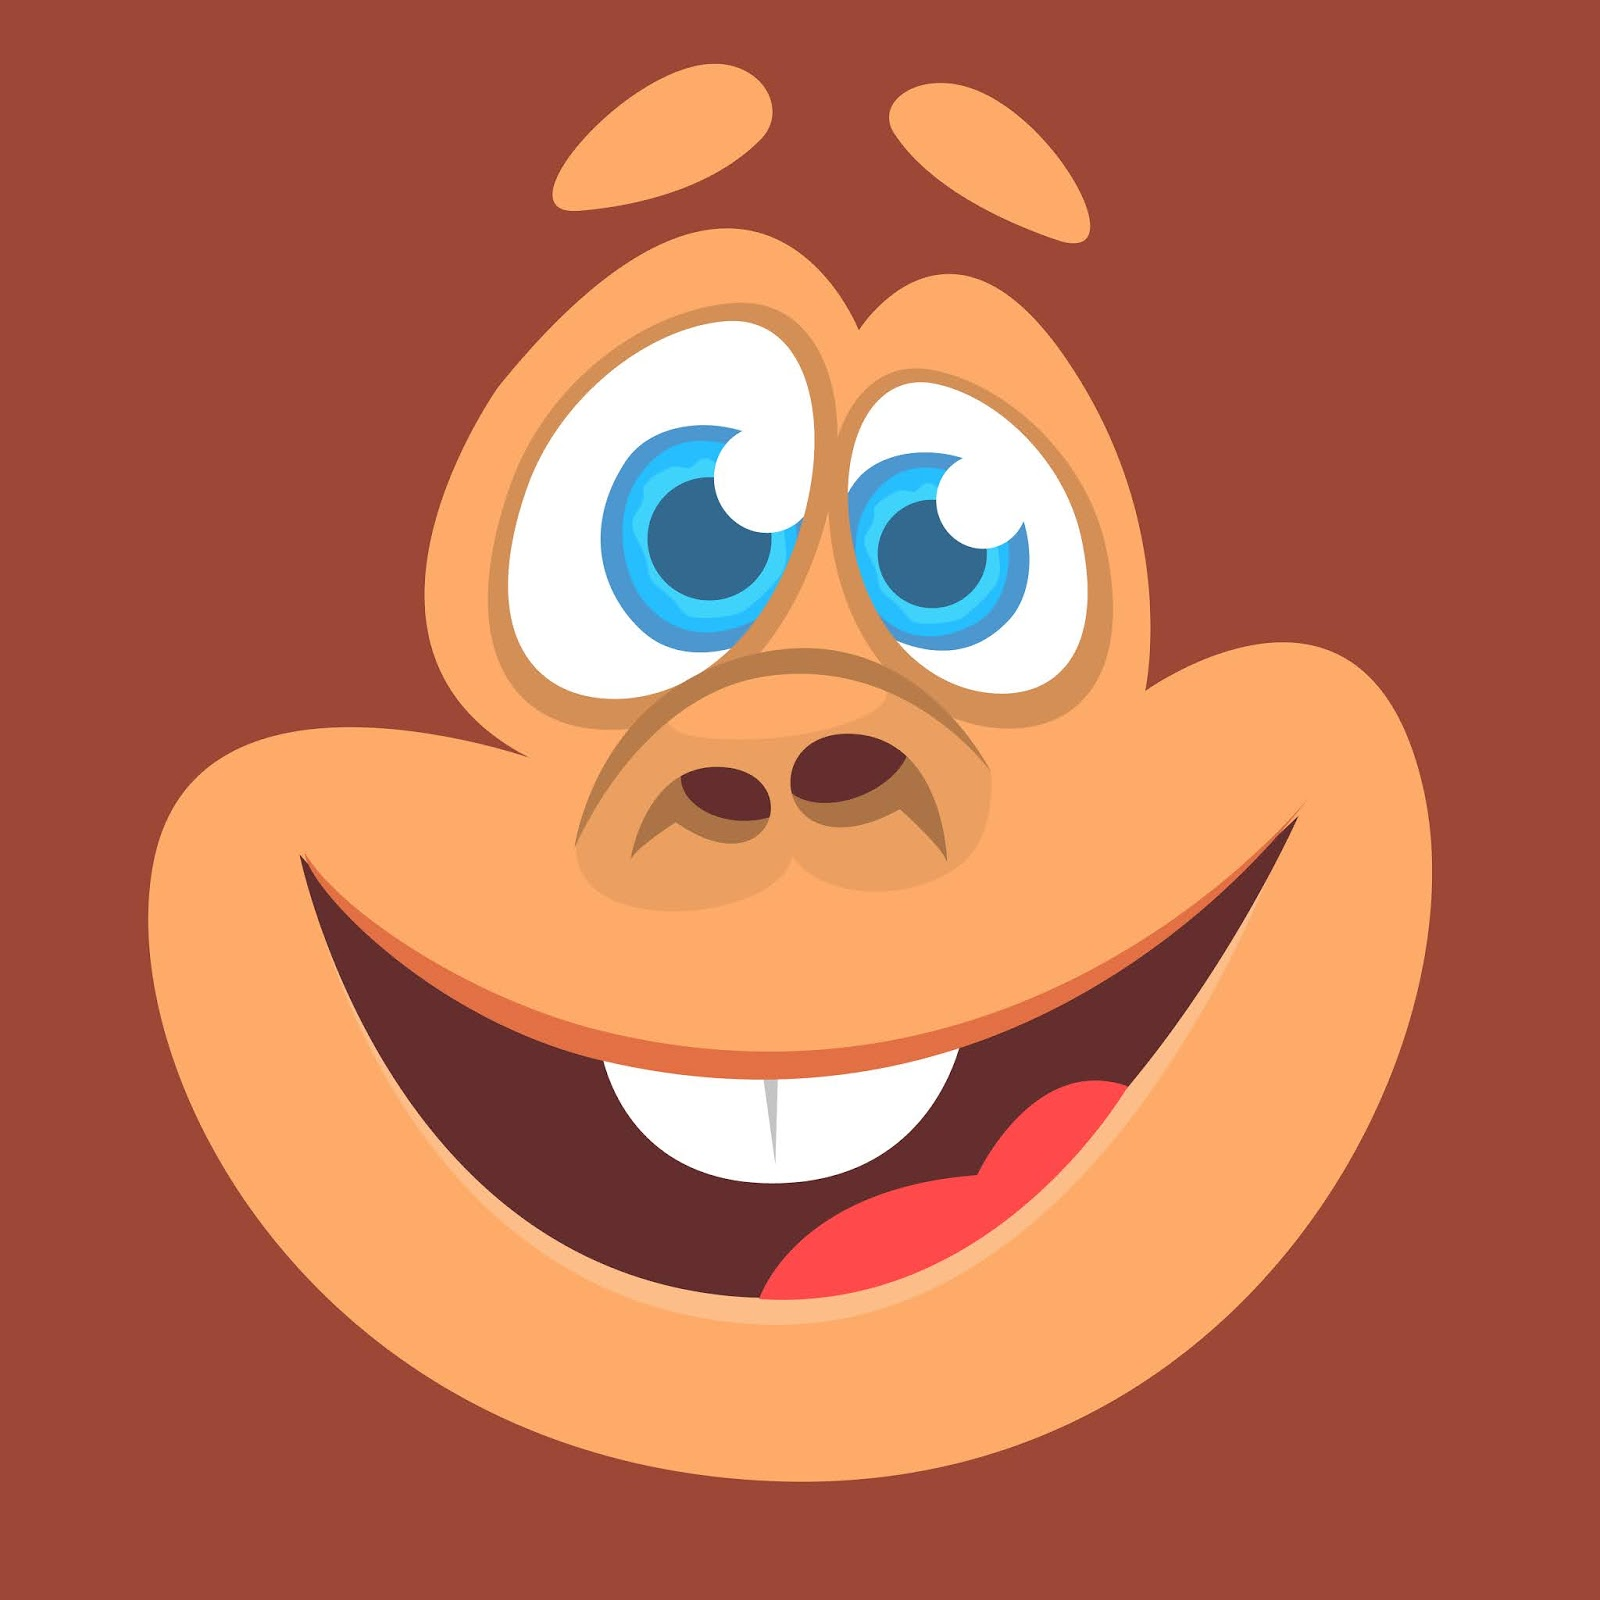 Cartoon Funny Monkey Face Avatar Free Download Vector CDR, AI, EPS and PNG Formats